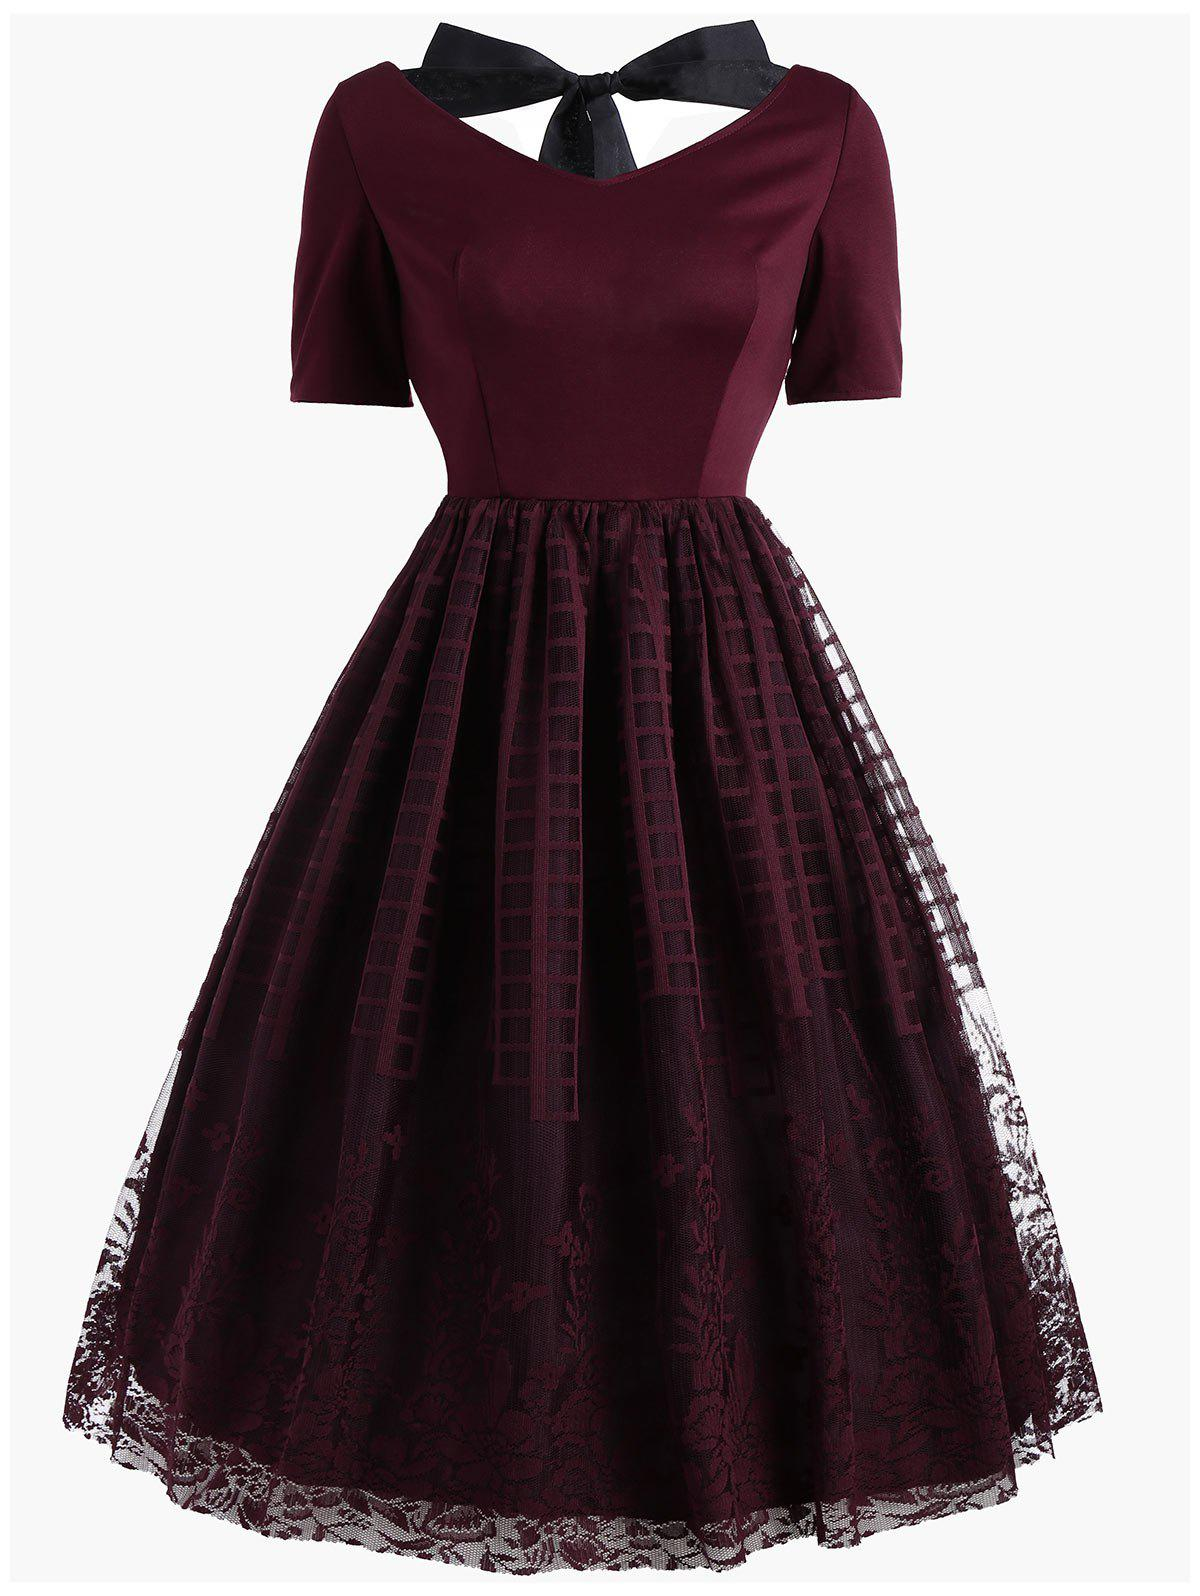 Vintage Bowknot Floral Plaid Lace DressWOMEN<br><br>Size: L; Color: WINE RED; Style: Vintage; Material: Cotton,Polyester; Silhouette: A-Line; Dresses Length: Mini; Neckline: Round Collar; Sleeve Length: Short Sleeves; Embellishment: Lace; Pattern Type: Solid; With Belt: No; Season: Fall; Weight: 0.4500kg; Package Contents: 1 x Dress;